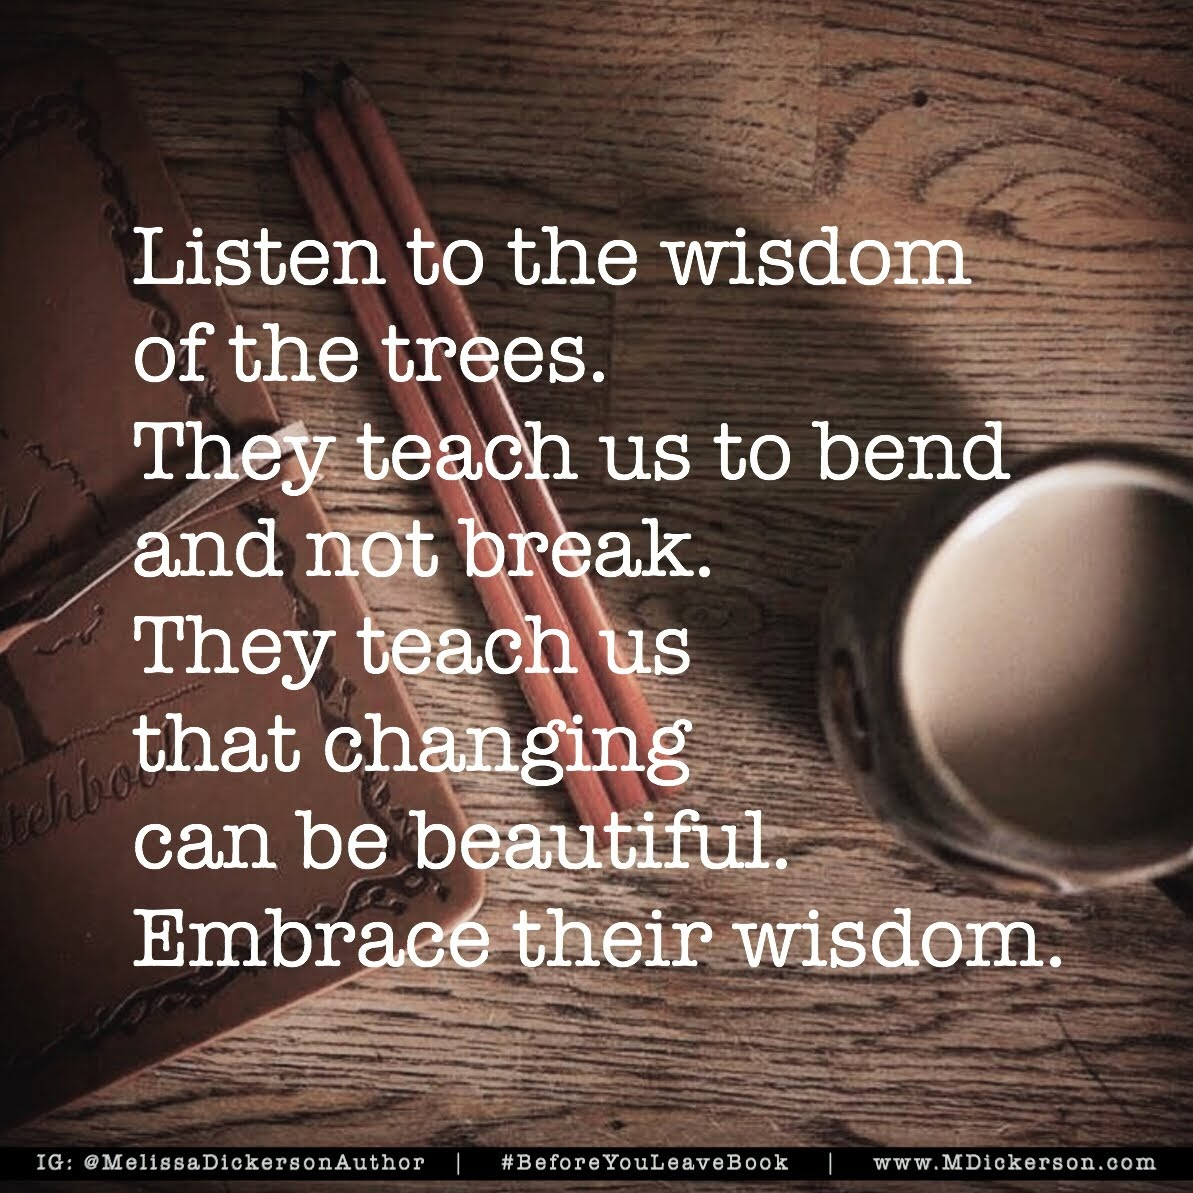 Wisdom Of The Trees from MDickerson.com